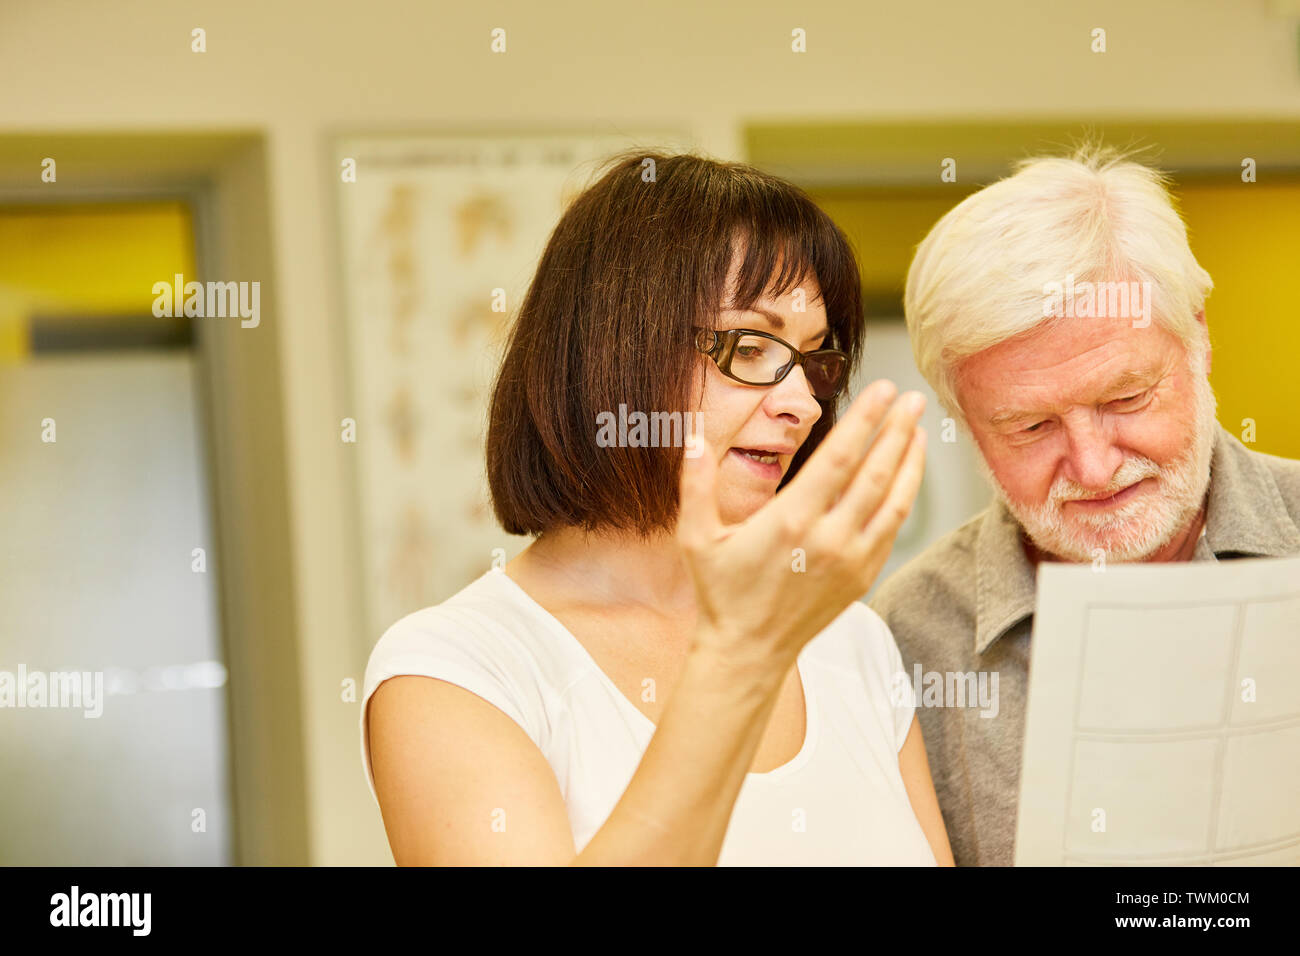 Doctor or physiotherapist shows senior man the treatment plan for the physiotherapy - Stock Image